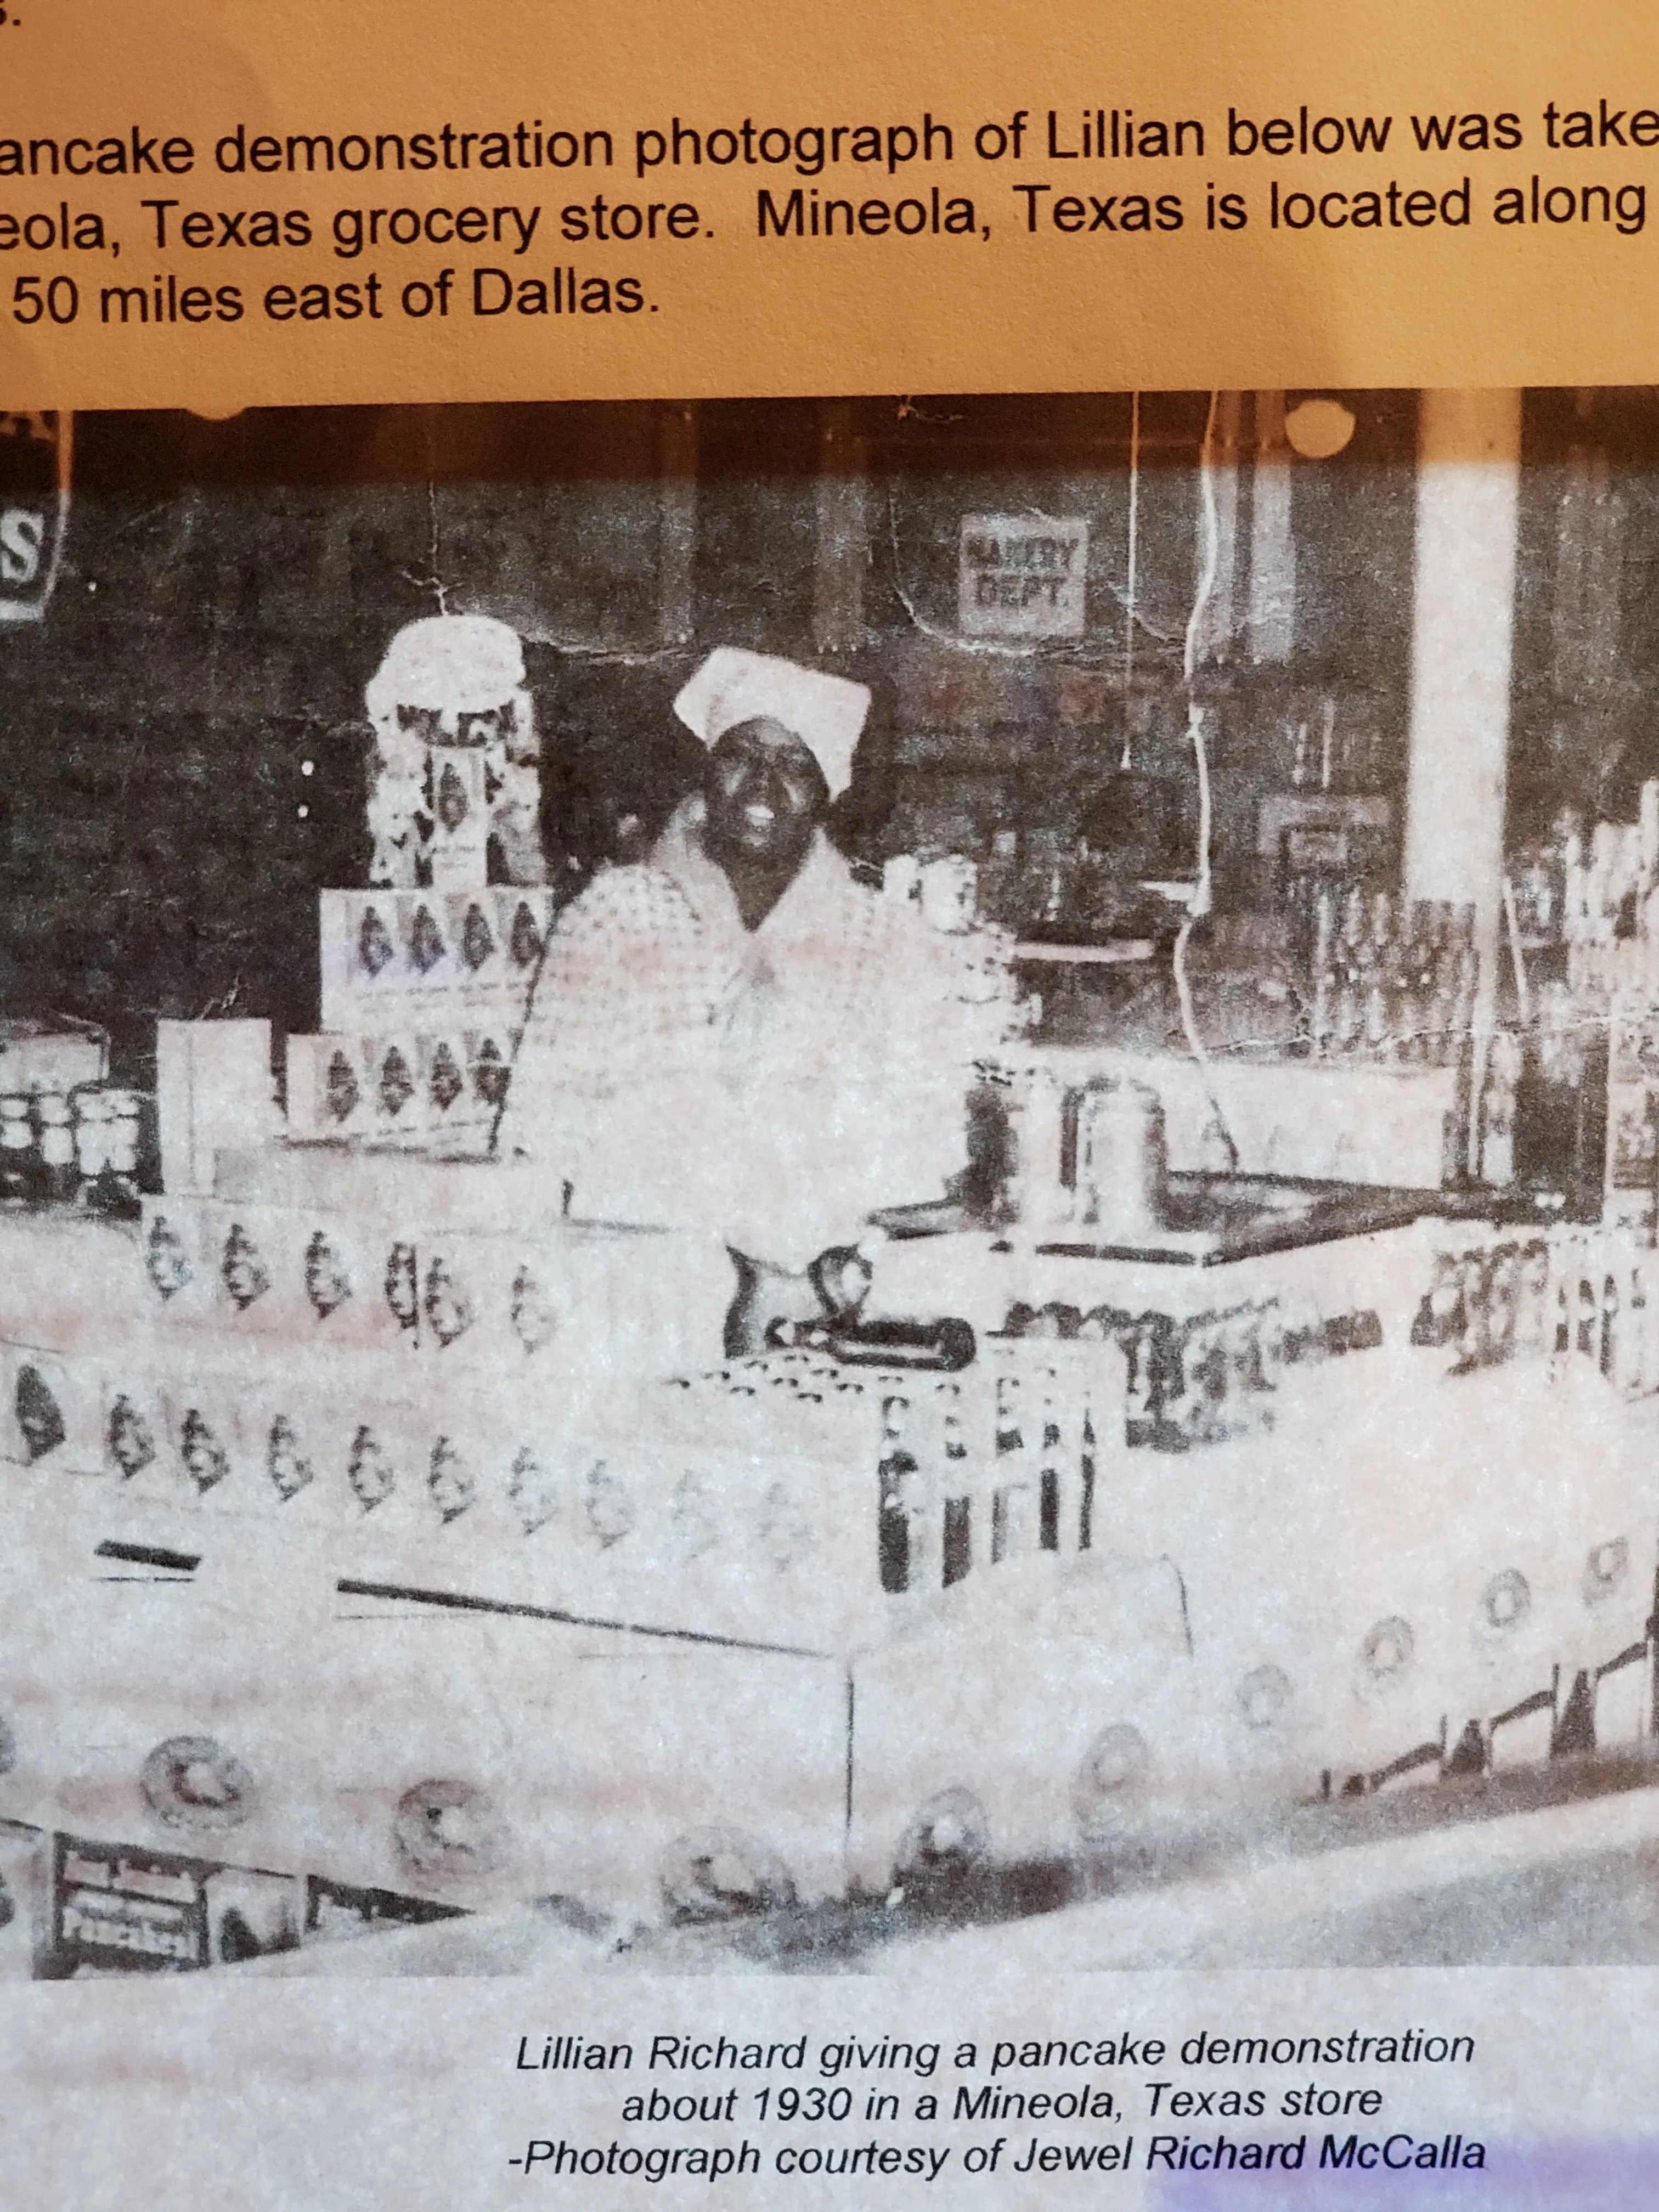 Lillian Richard portrayed Aunt Jemima in cooking demonstrations at fairs, stores and other public events.